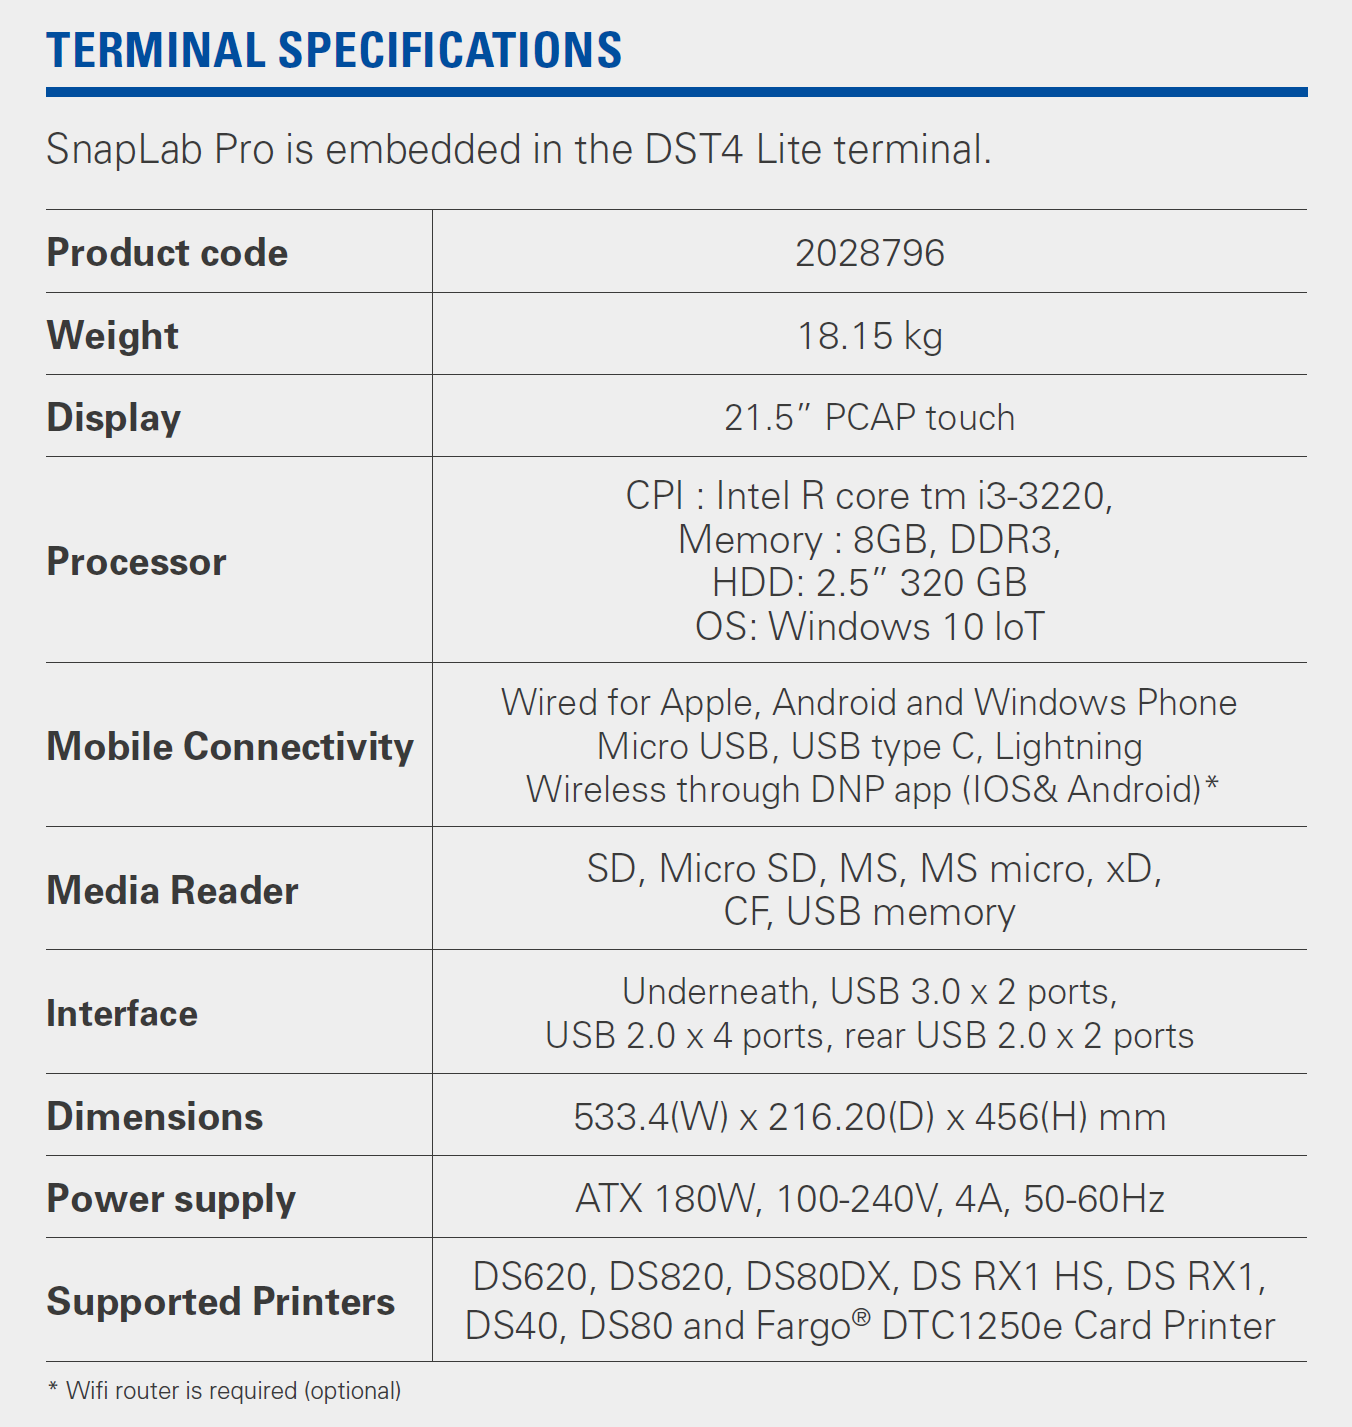 snaplab pro specifications